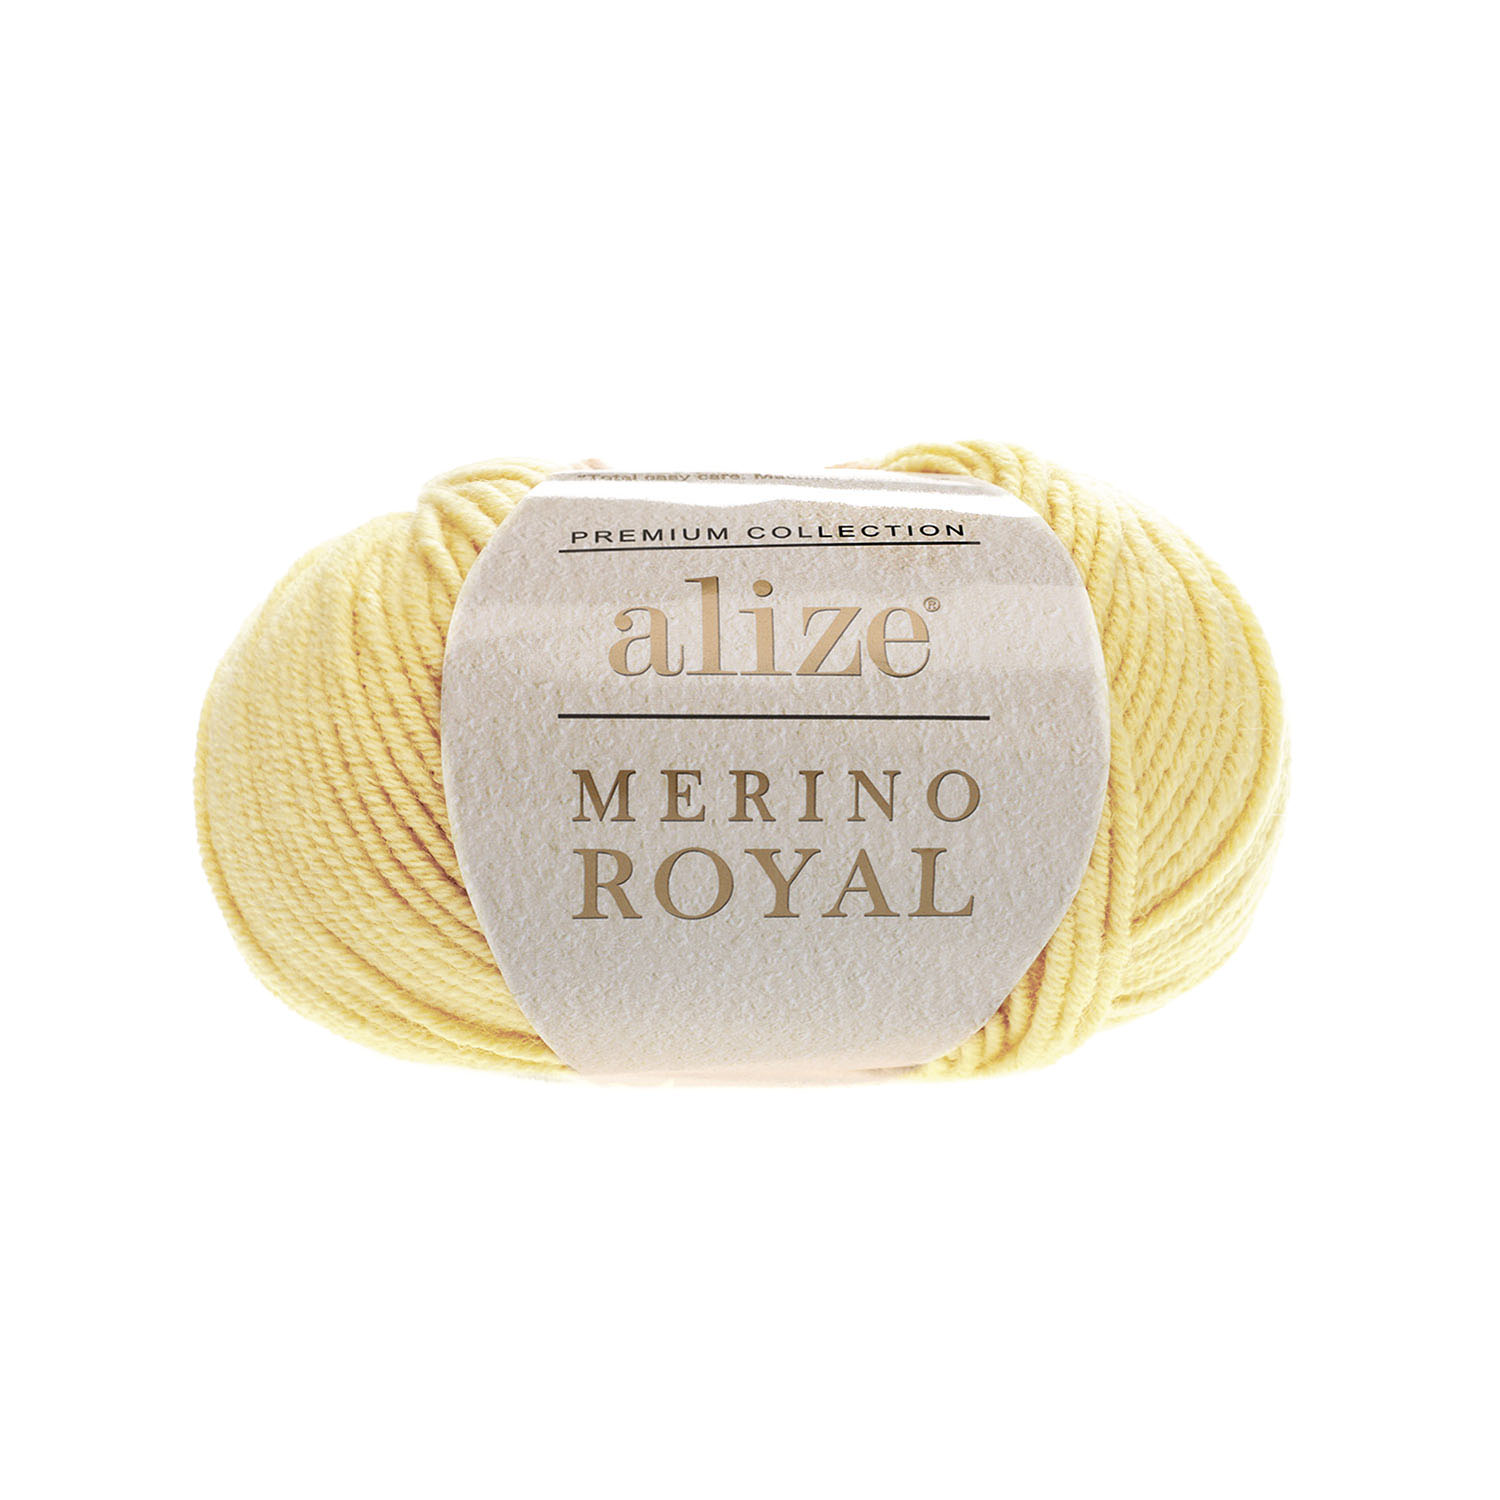 Svetlo žltá 100% merino vlna Merino Royal 187 (Superwash)